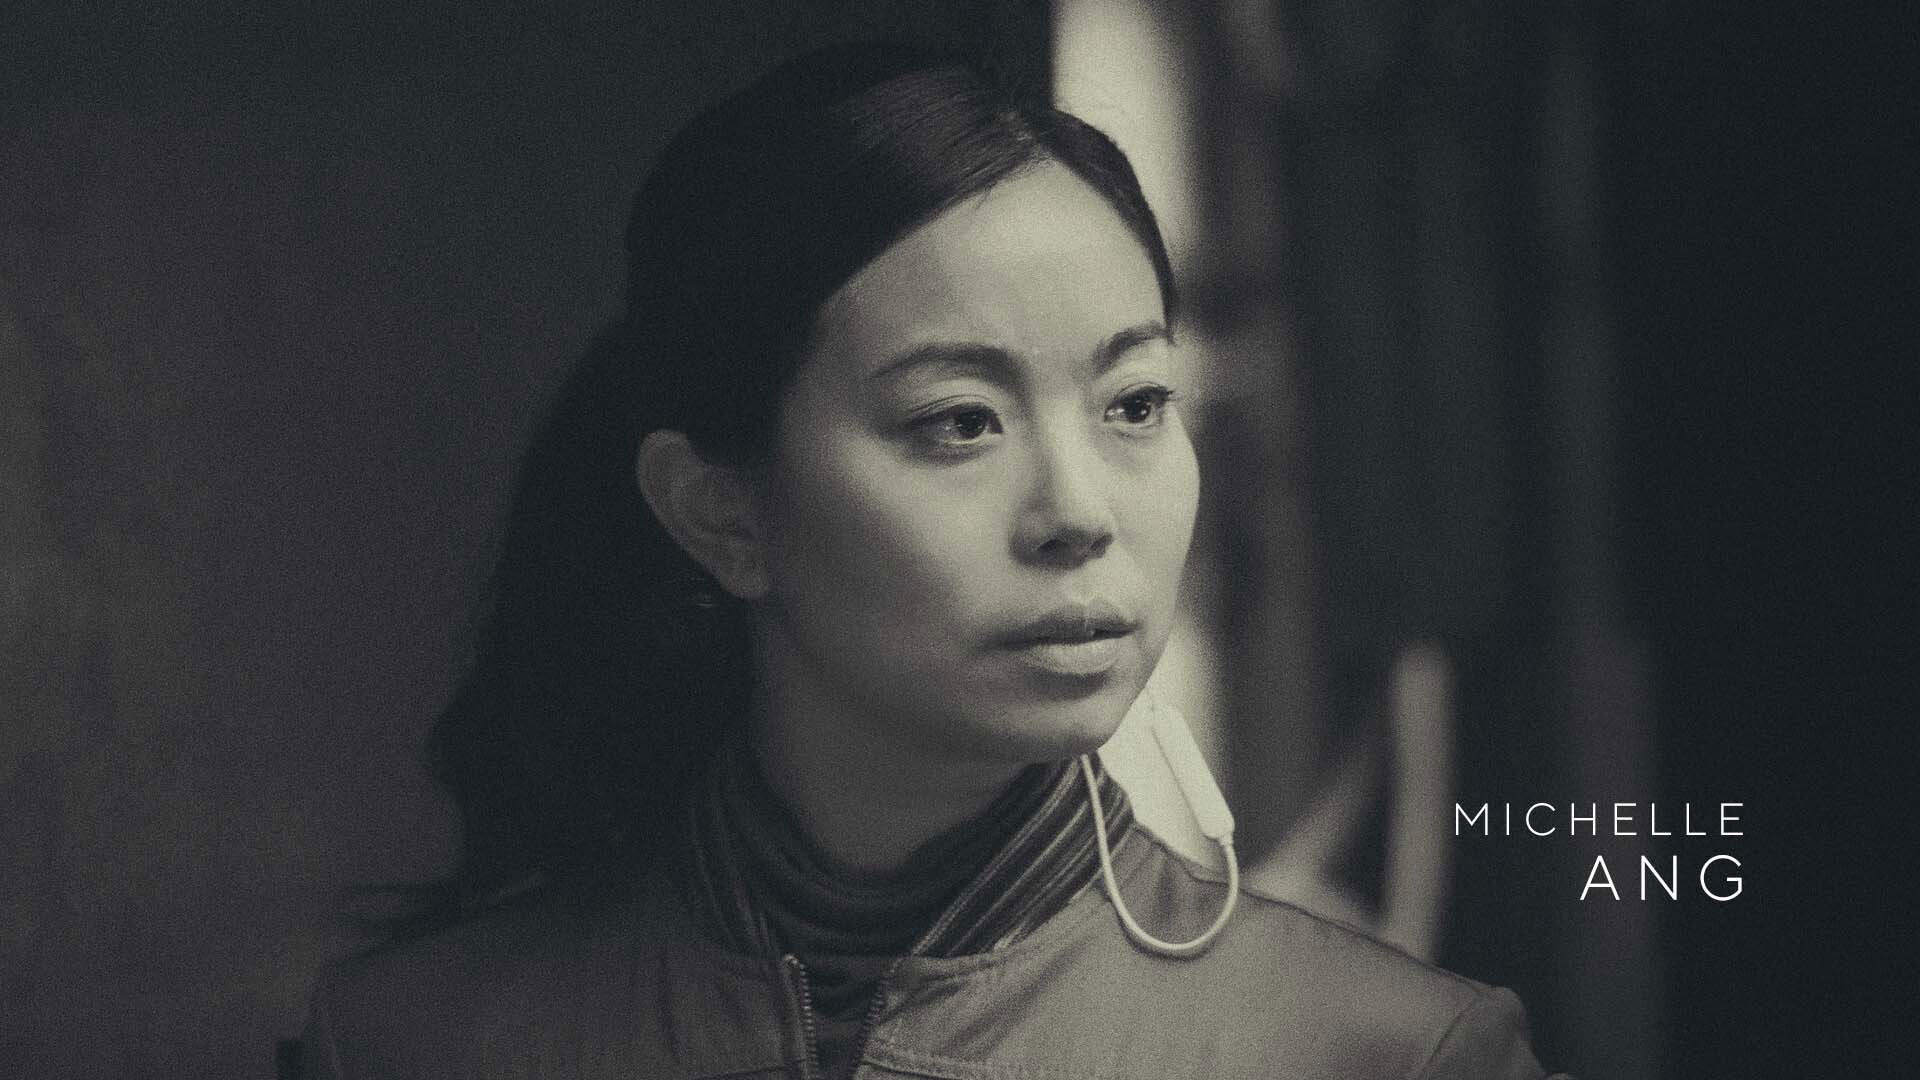 Michelle Ang as Dr. Ling Hai in